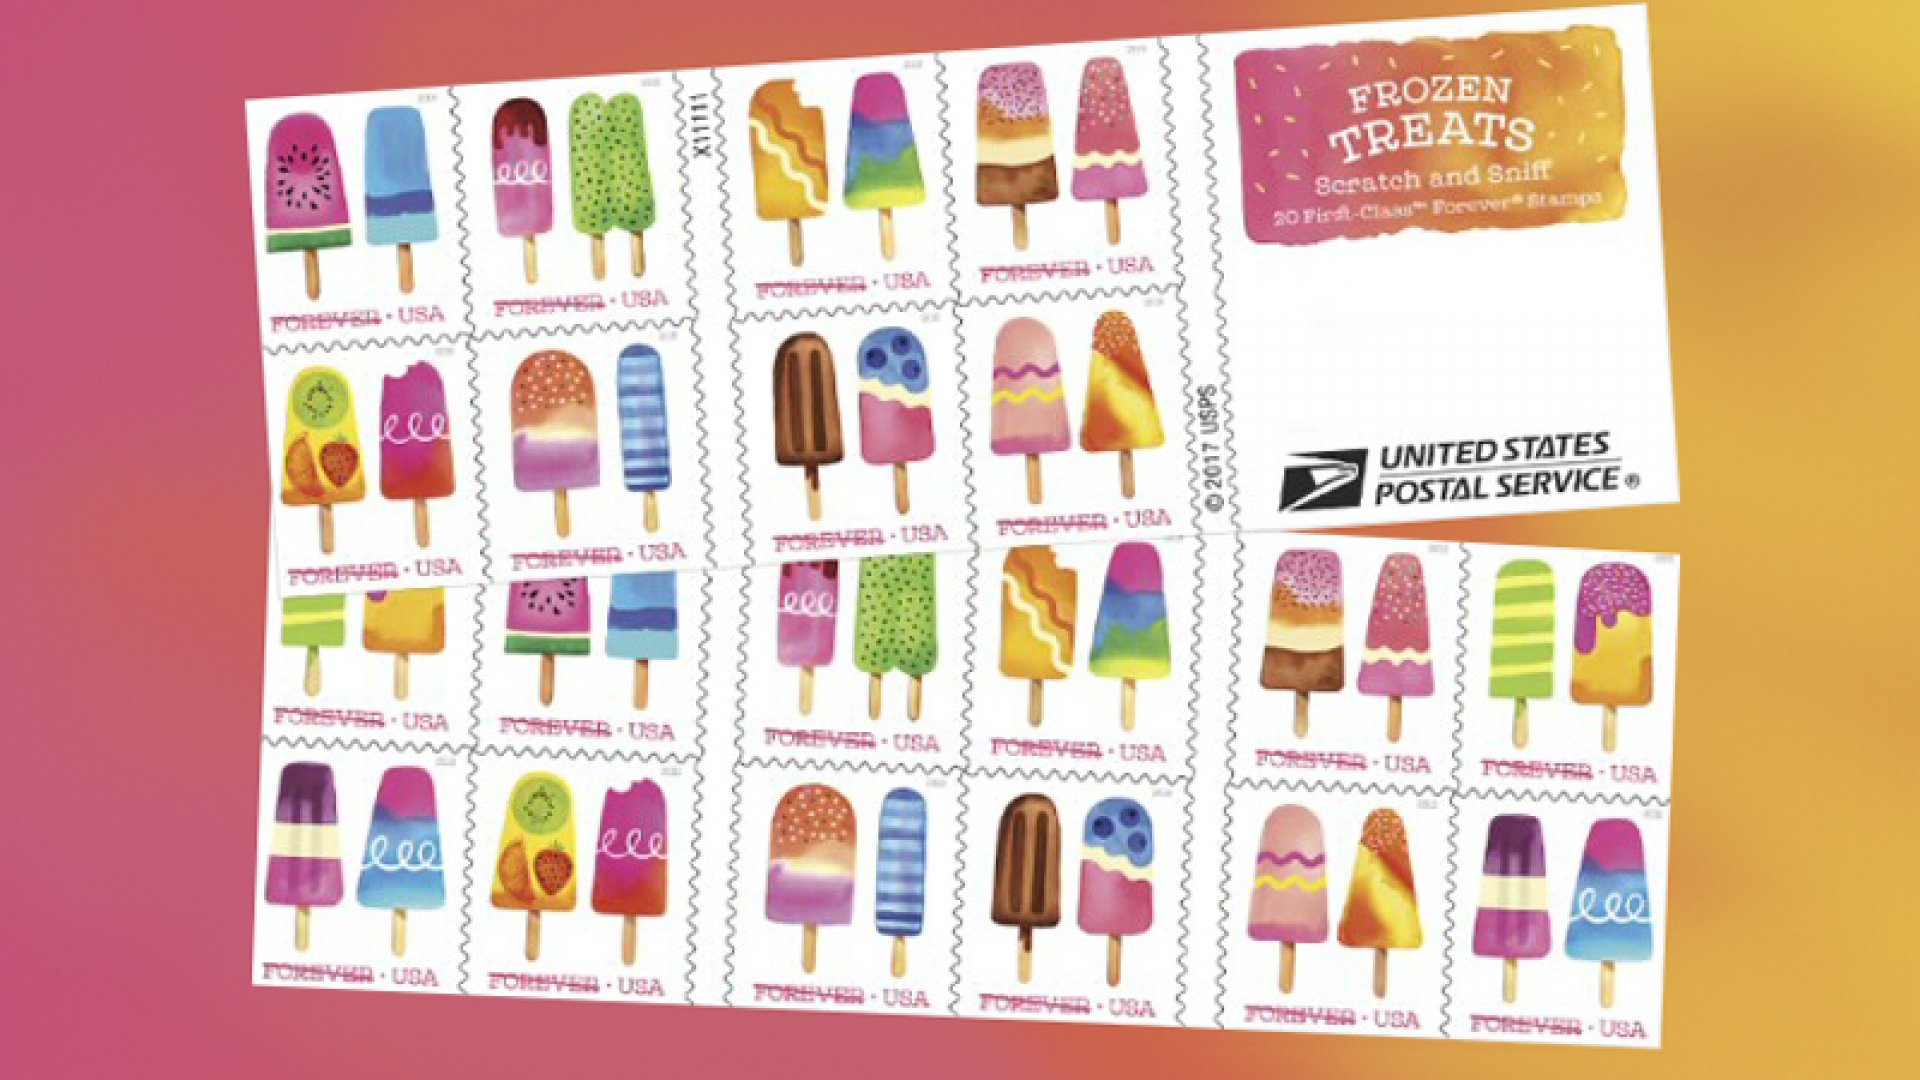 Why the Post Office Smells a Winner With Scratch-n-Sniff Postage Stamps